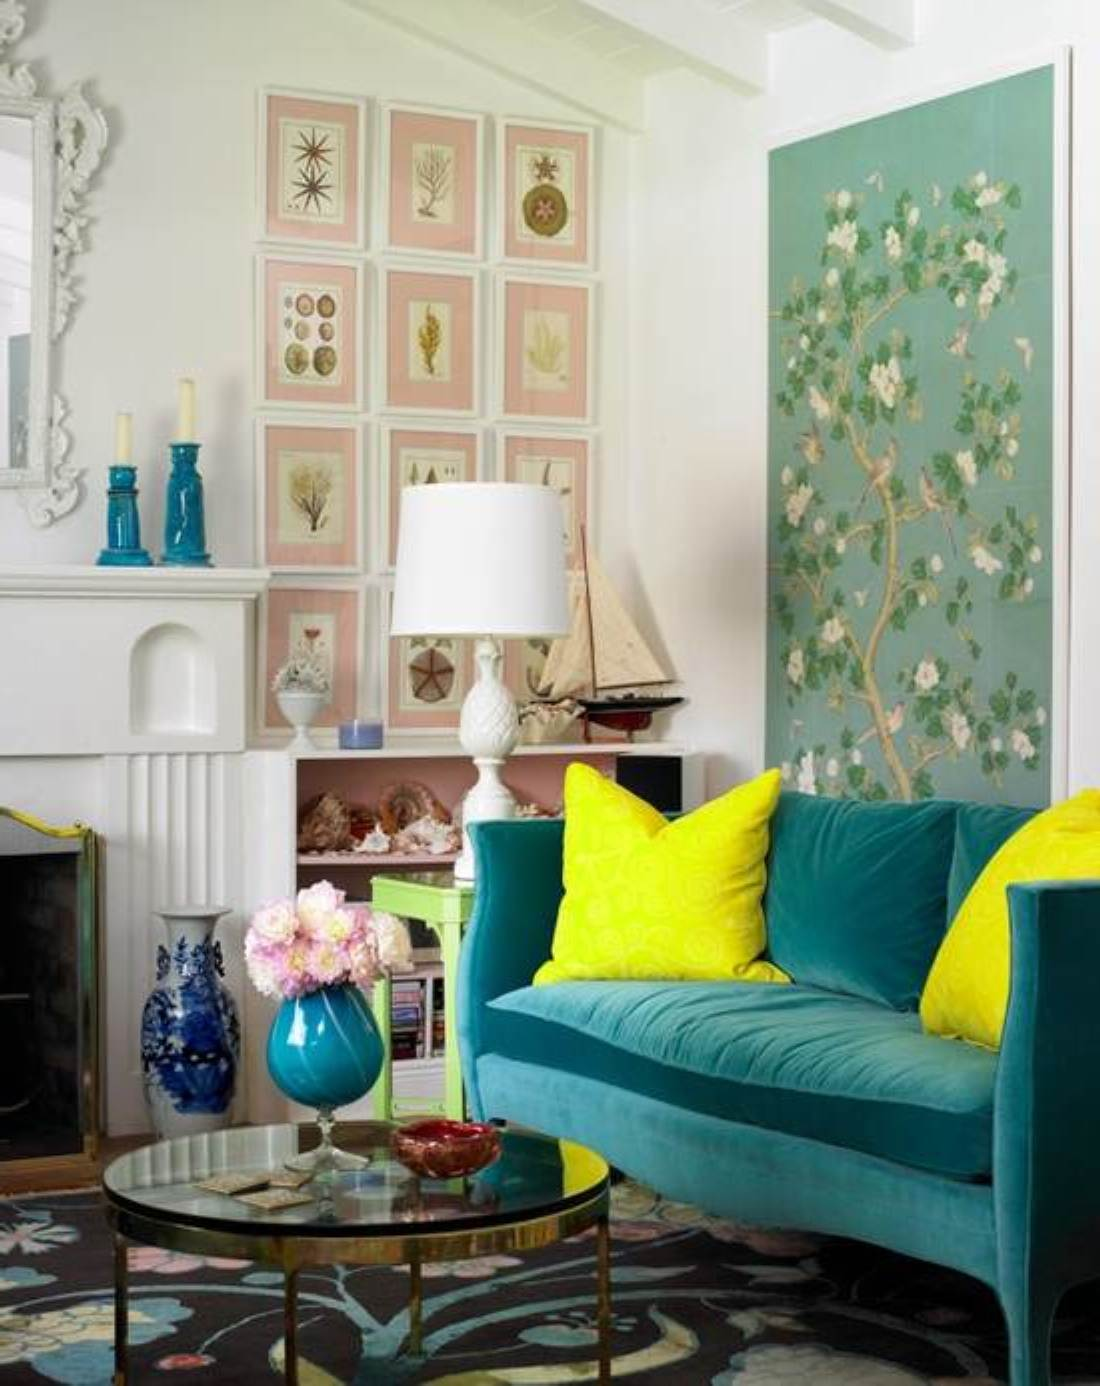 Some easy rules of small space decorating live diy ideas for Room furnishing ideas